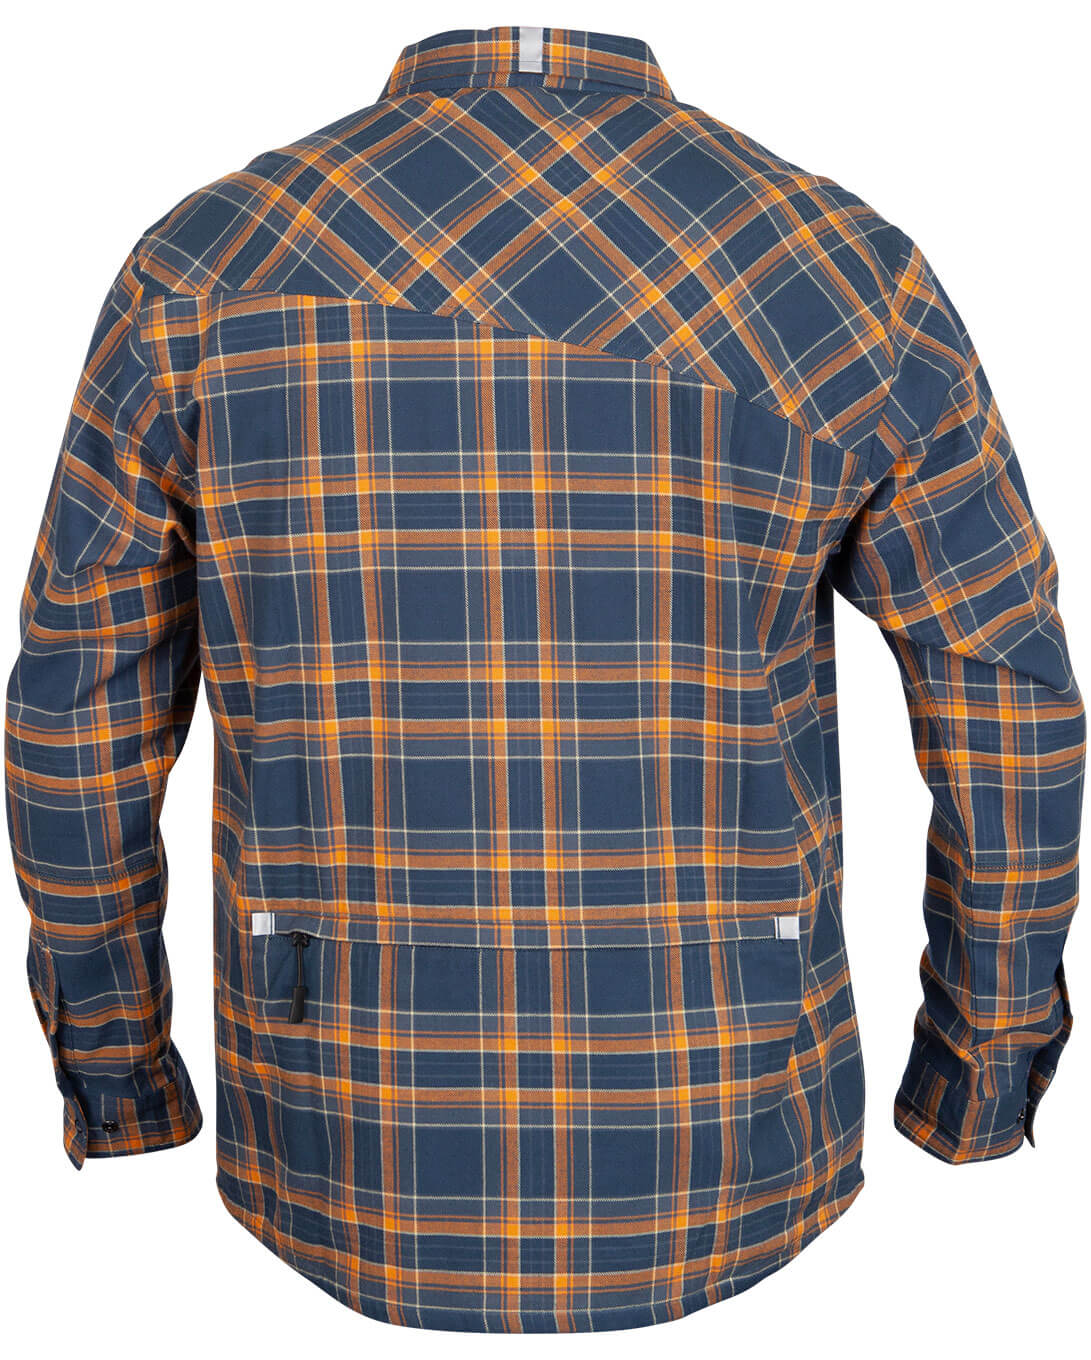 Fall Line Flannel